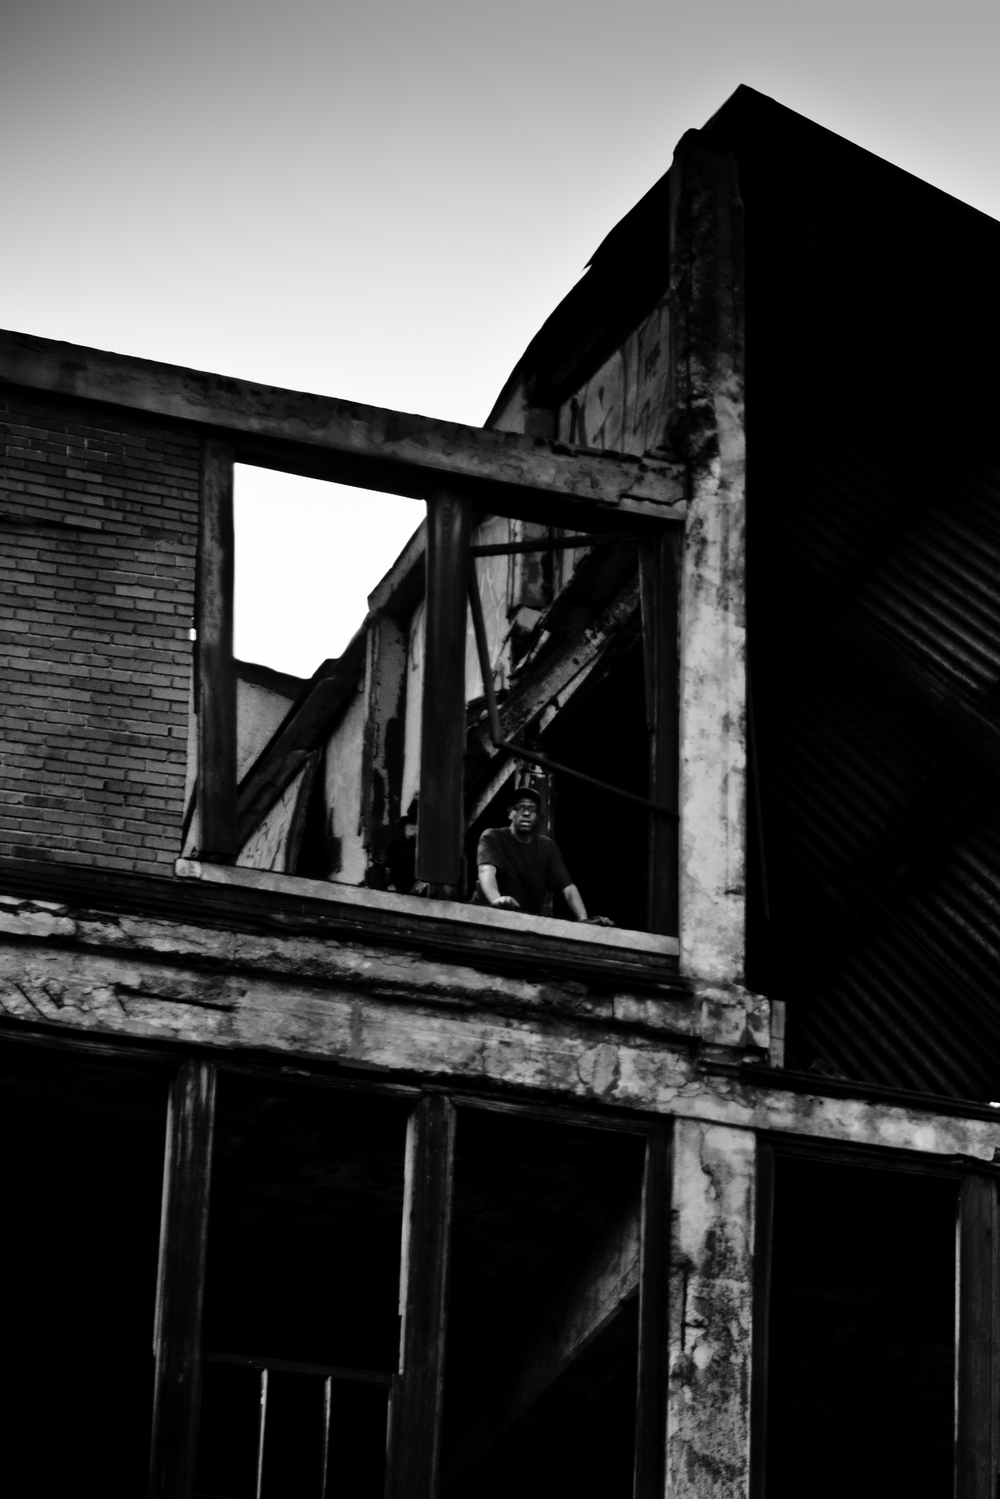 A scrapper looks down from the fifth floor of the Packard Plant to speak to his partner. Packard Plant, Detroit.